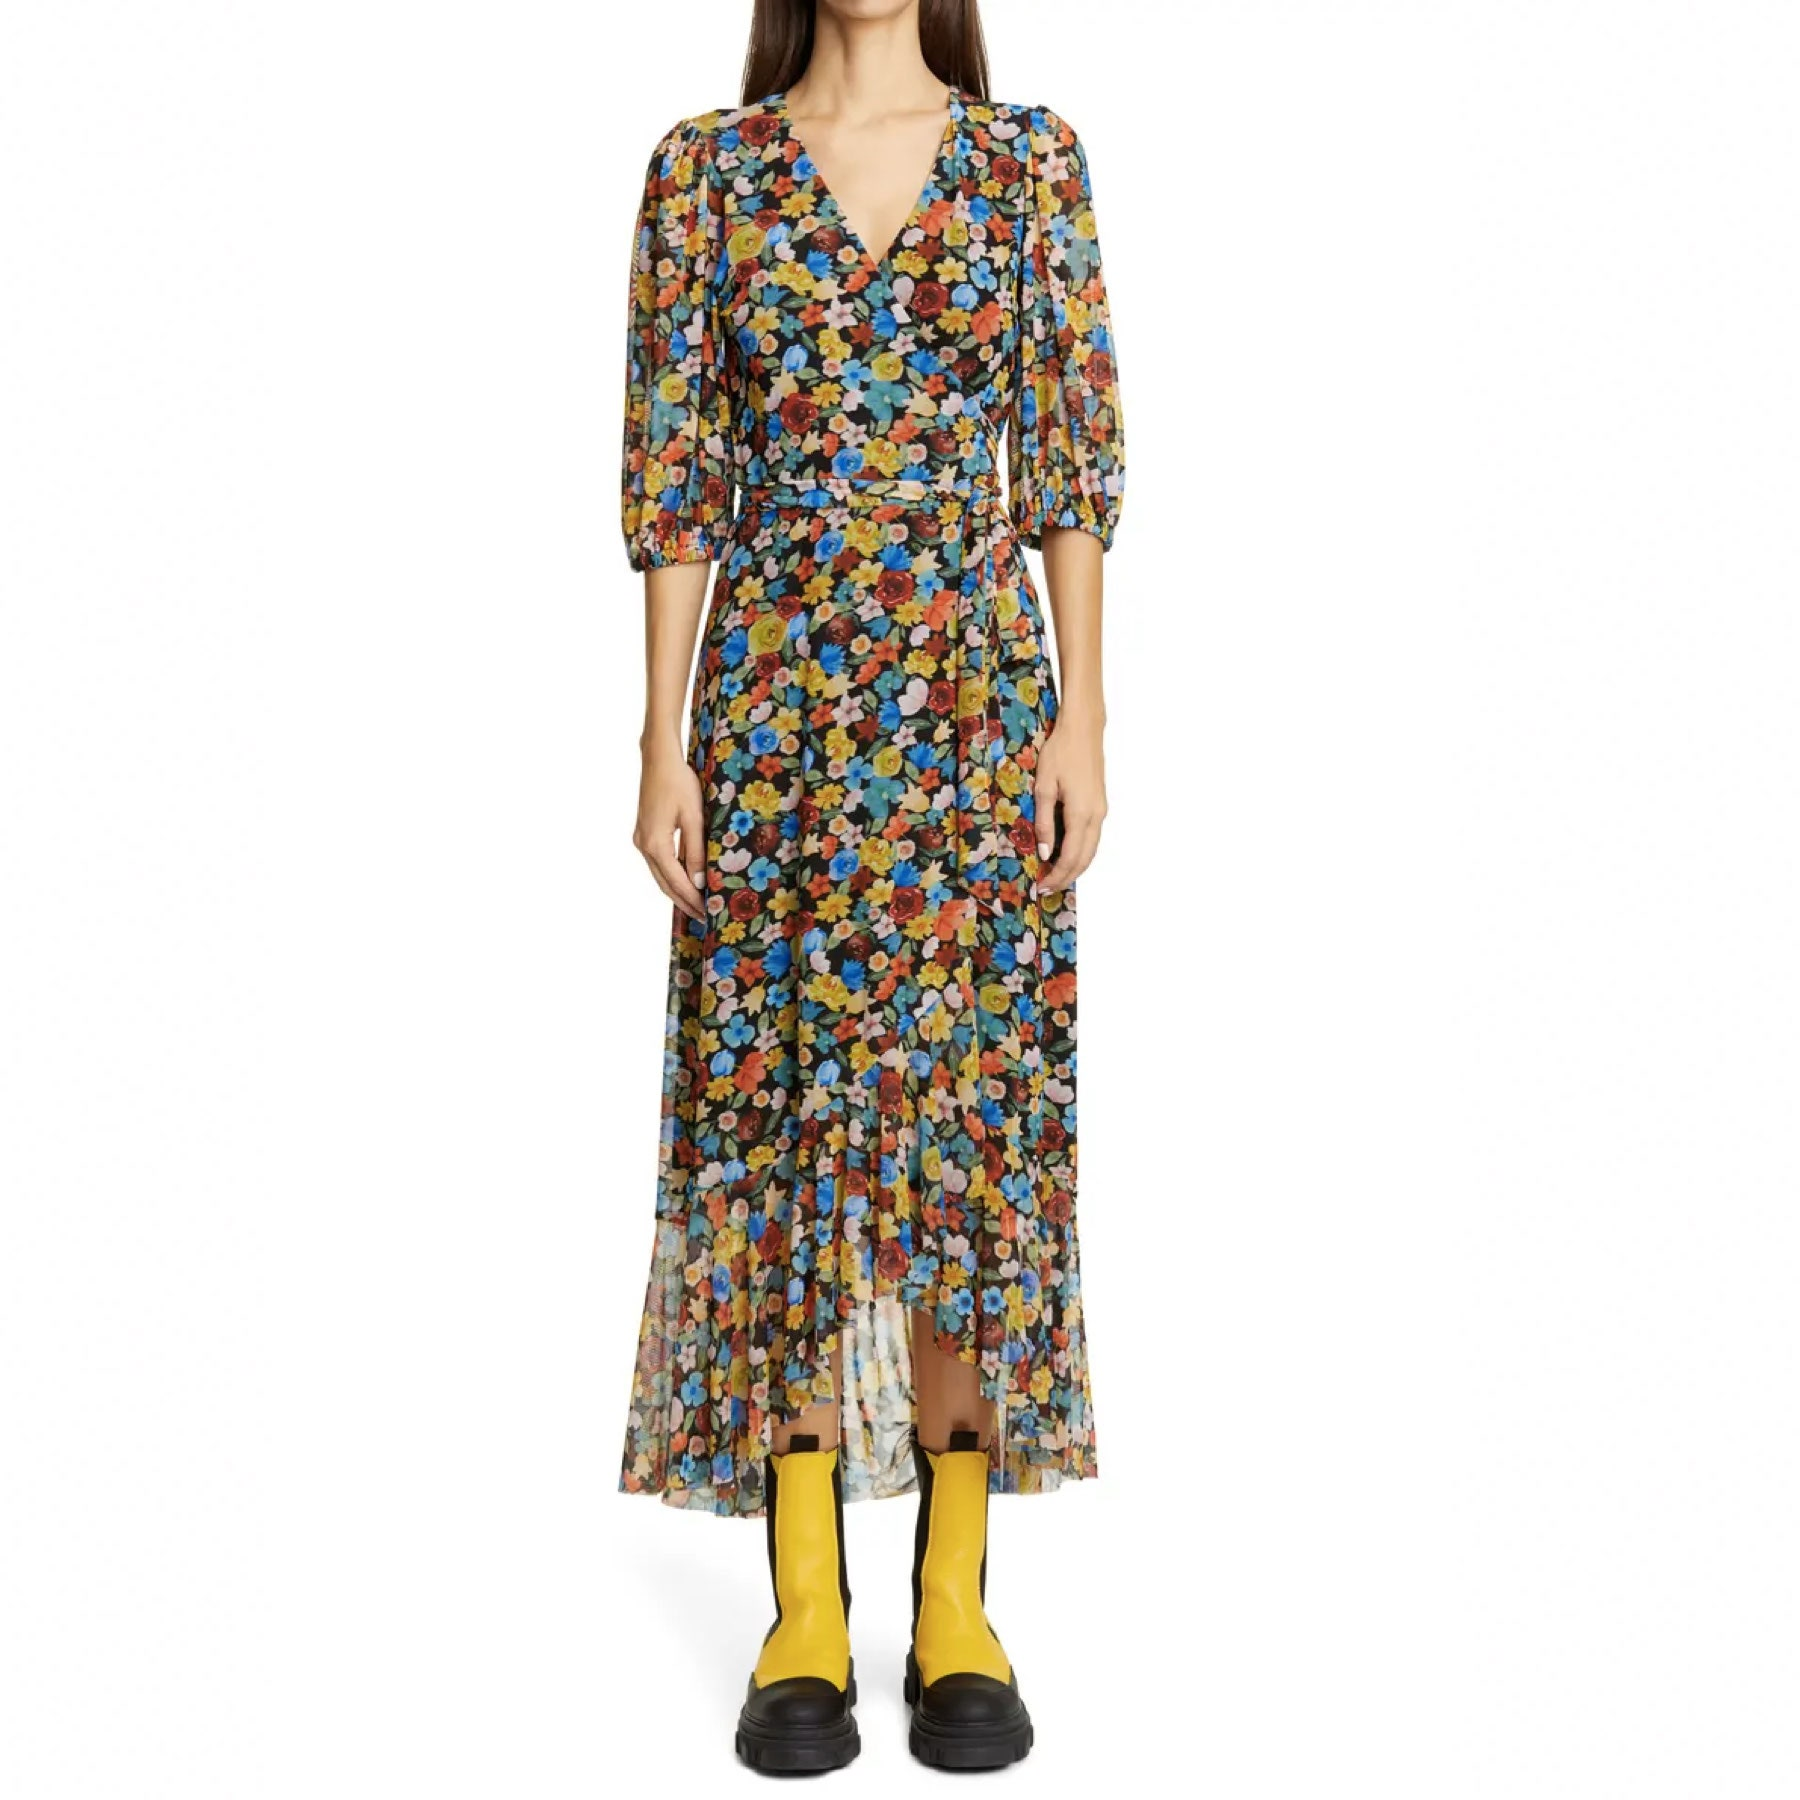 model wearing maxi floral dress and yellow boots